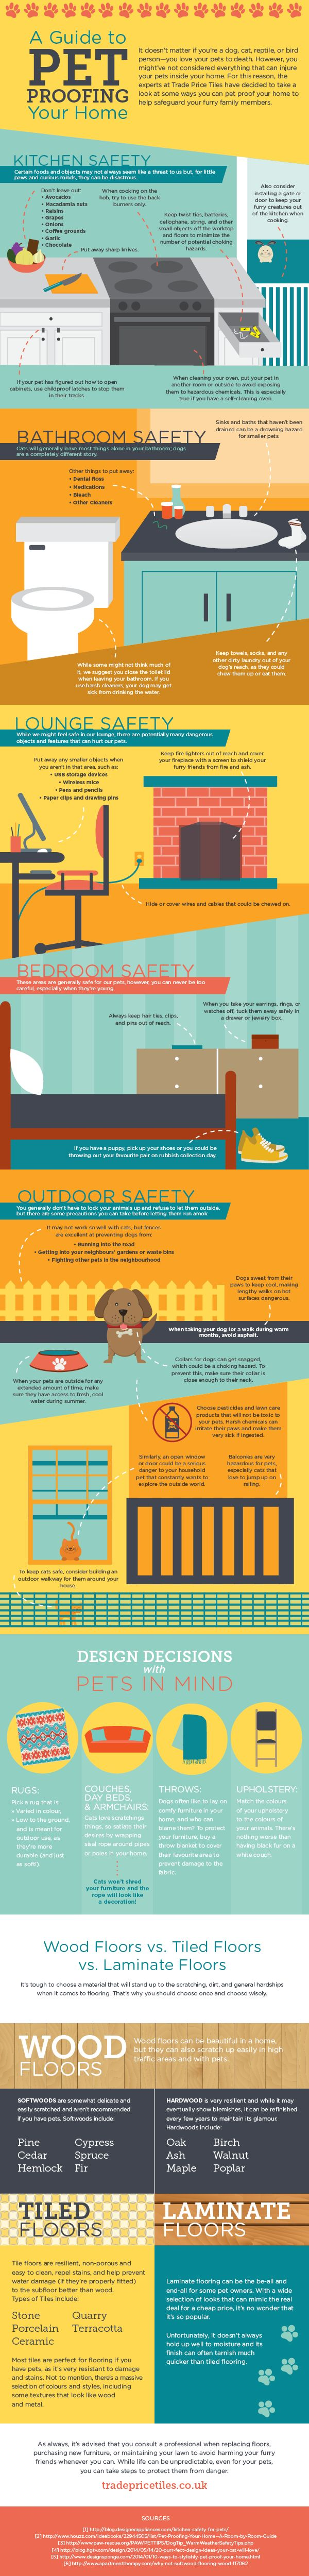 Ready to adopt a furry friend? This infographic has great tips for pet-proofing your home before your new dog or cat joins the family!